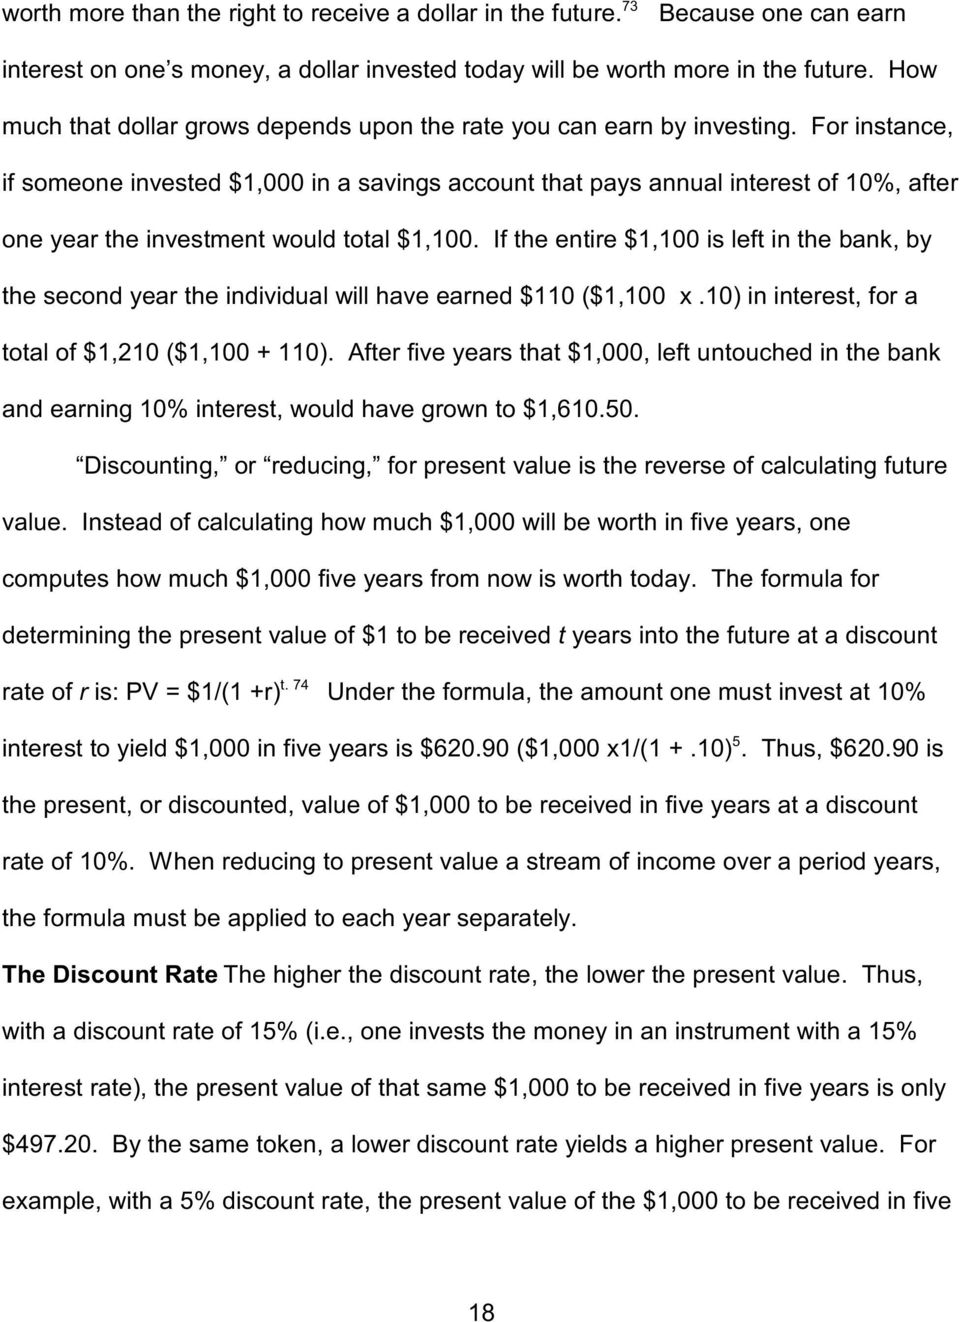 For instance, if someone invested $1,000 in a savings account at pays annual interest of 10%, after one year e investment would total $1,100.